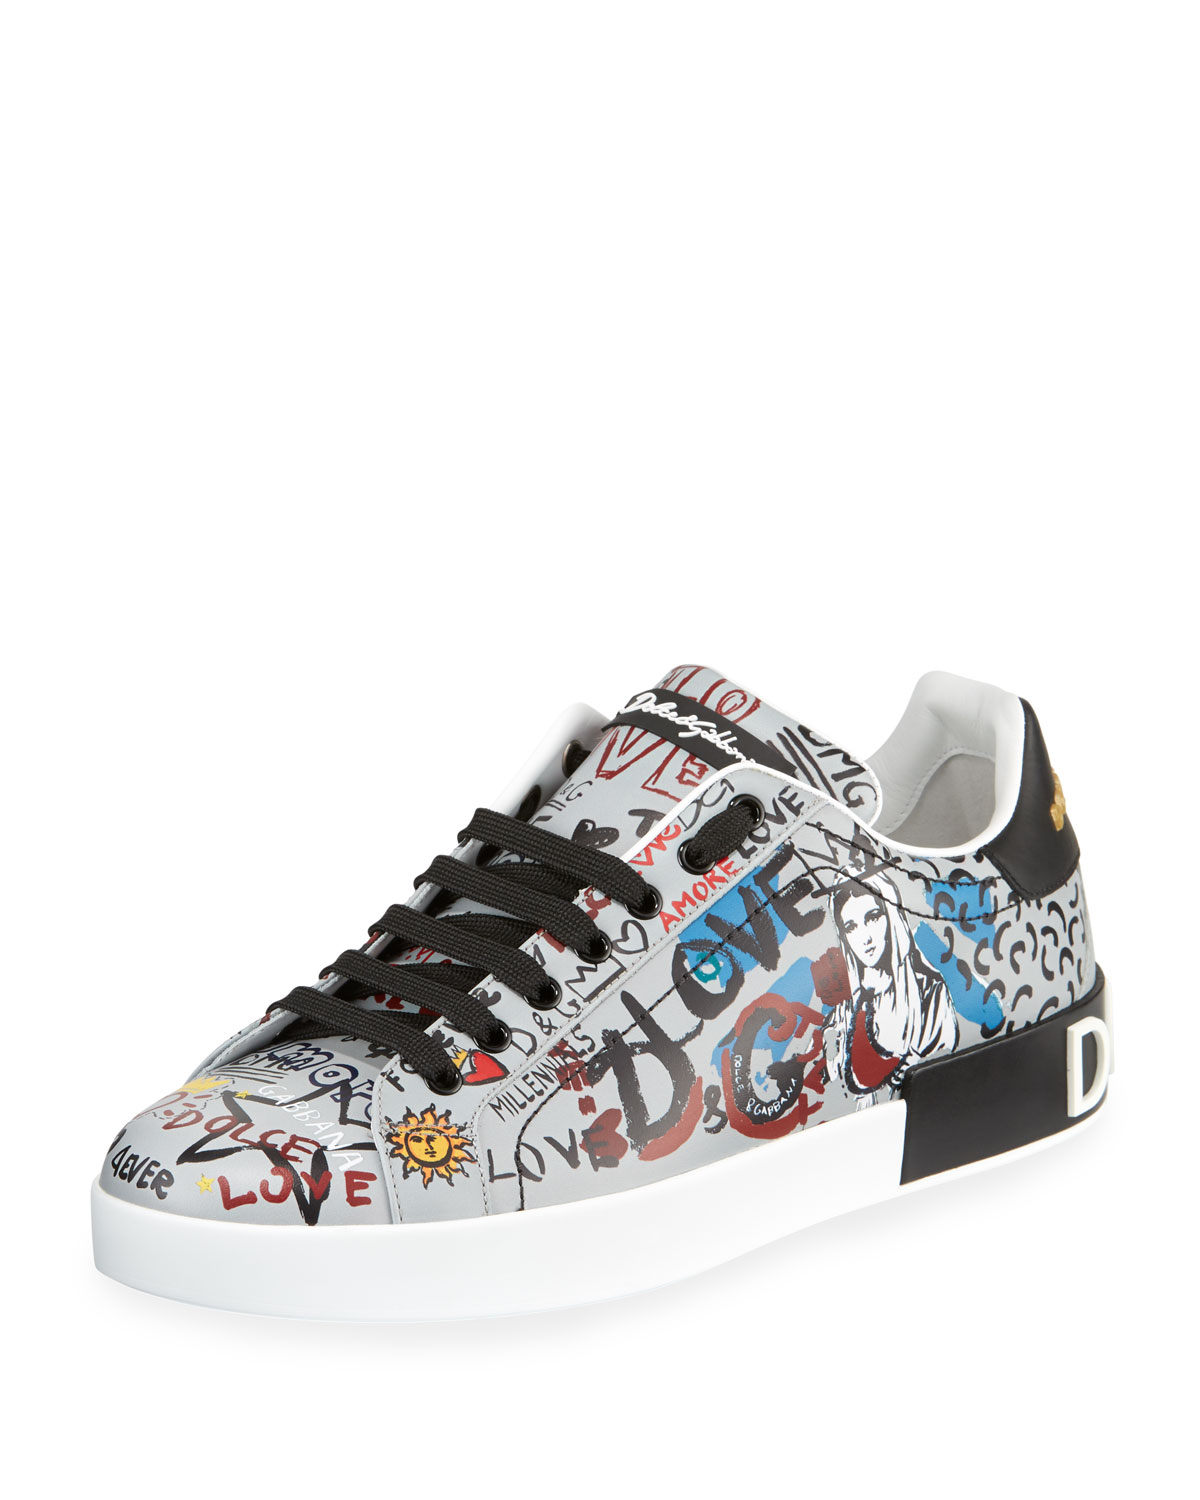 baefdf342846 Dolce & Gabbana Men's Portofino Graffiti Leather Low-Top Sneakers ...